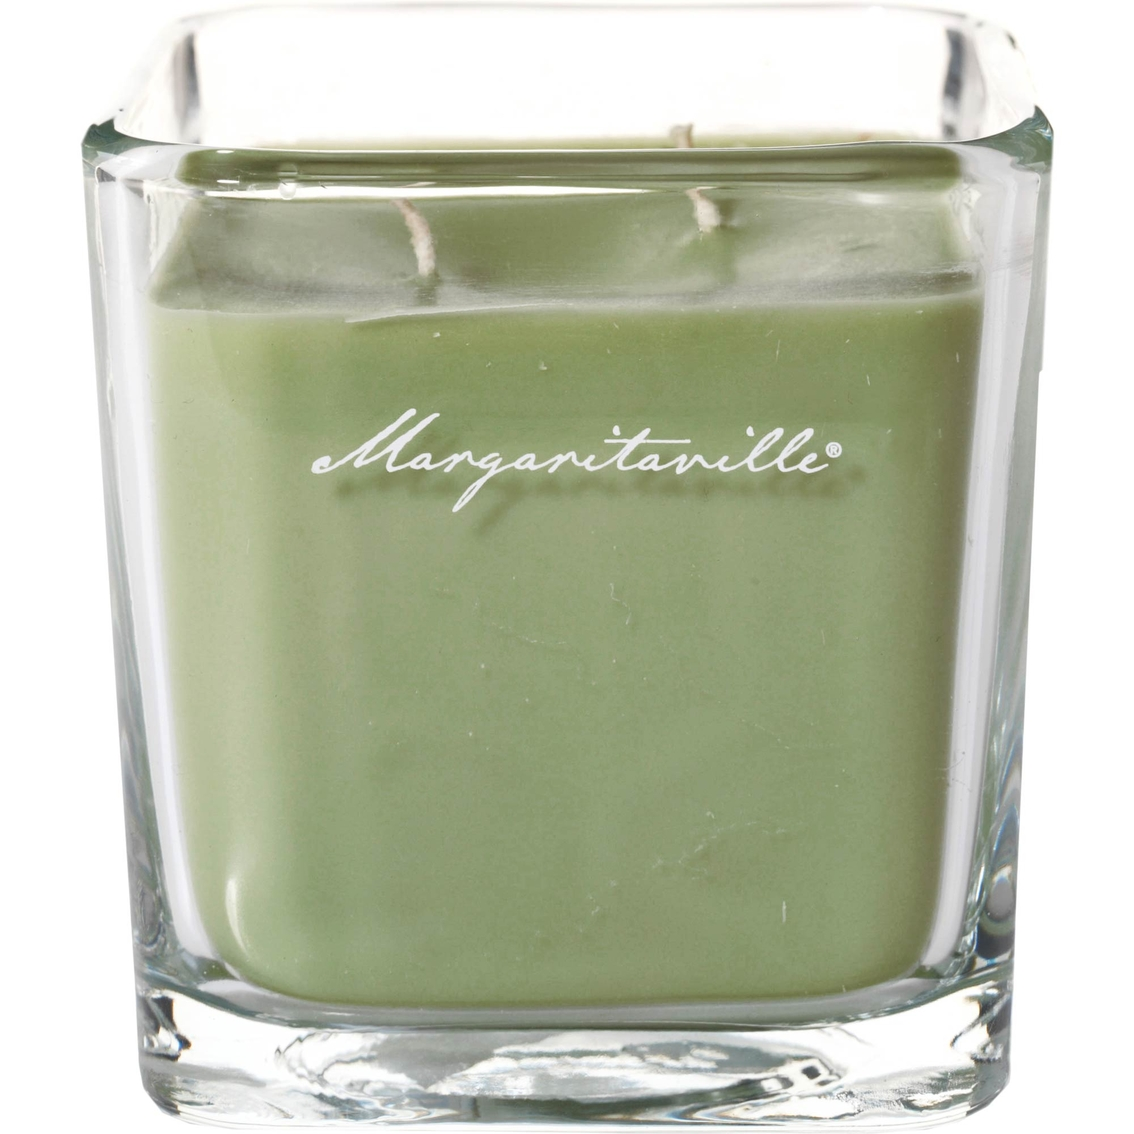 Sensational Yankee Candle Margaritaville Edge Of Paradise 2 Wick Square Machost Co Dining Chair Design Ideas Machostcouk